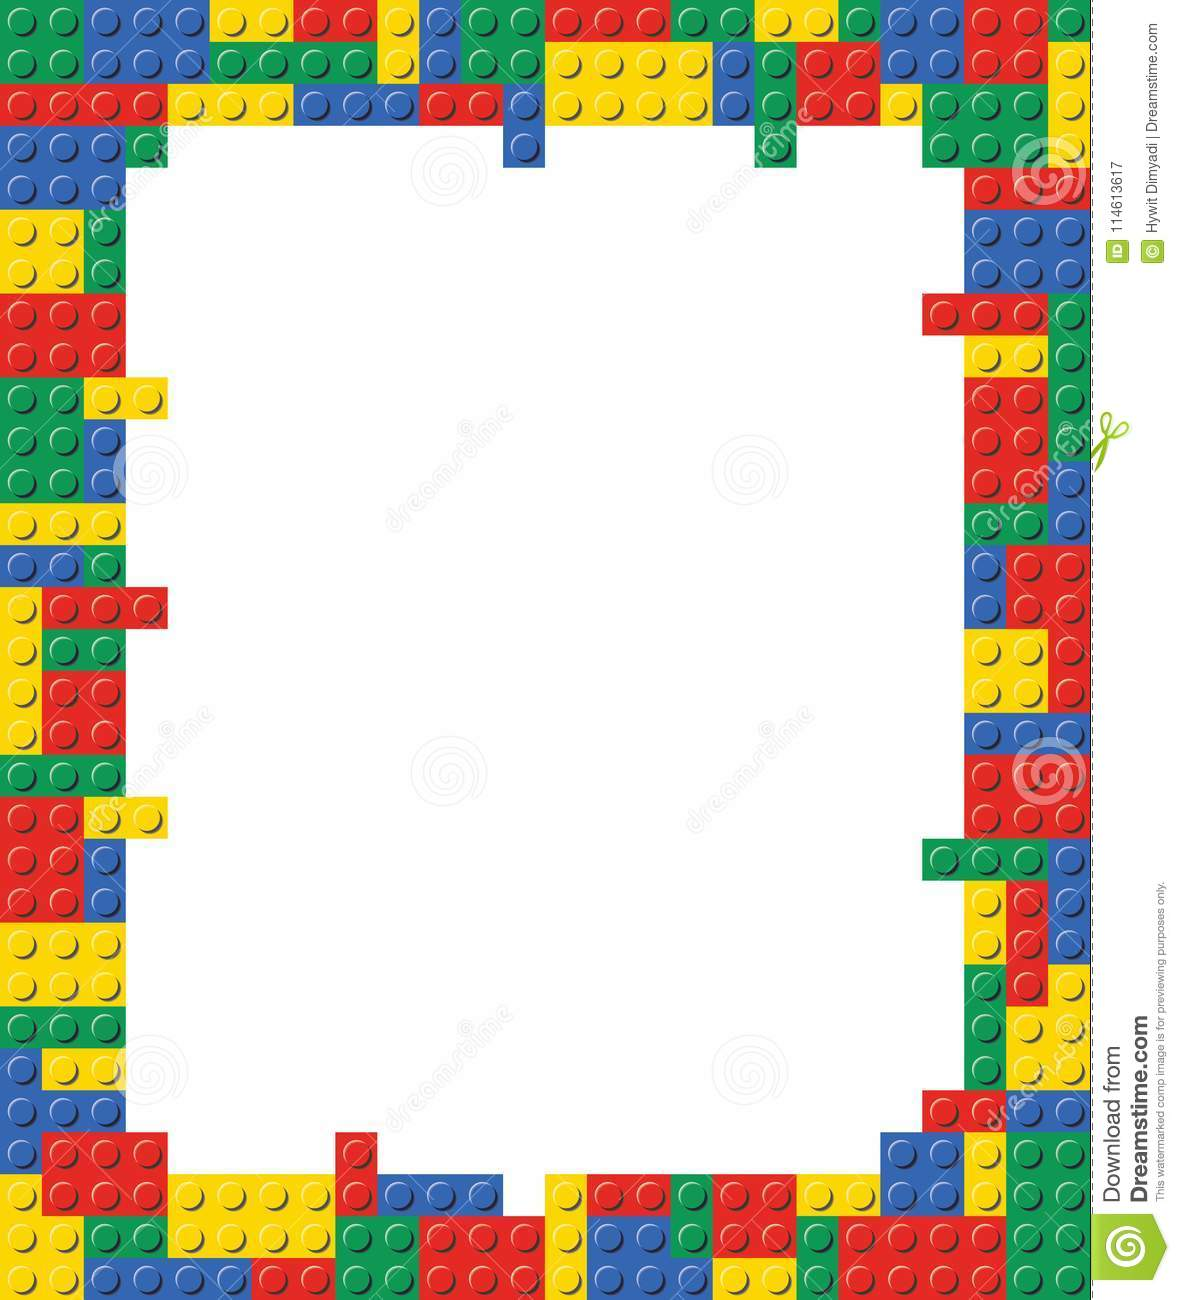 Playing Block Frame Template Background Illustration Stock Vector ...